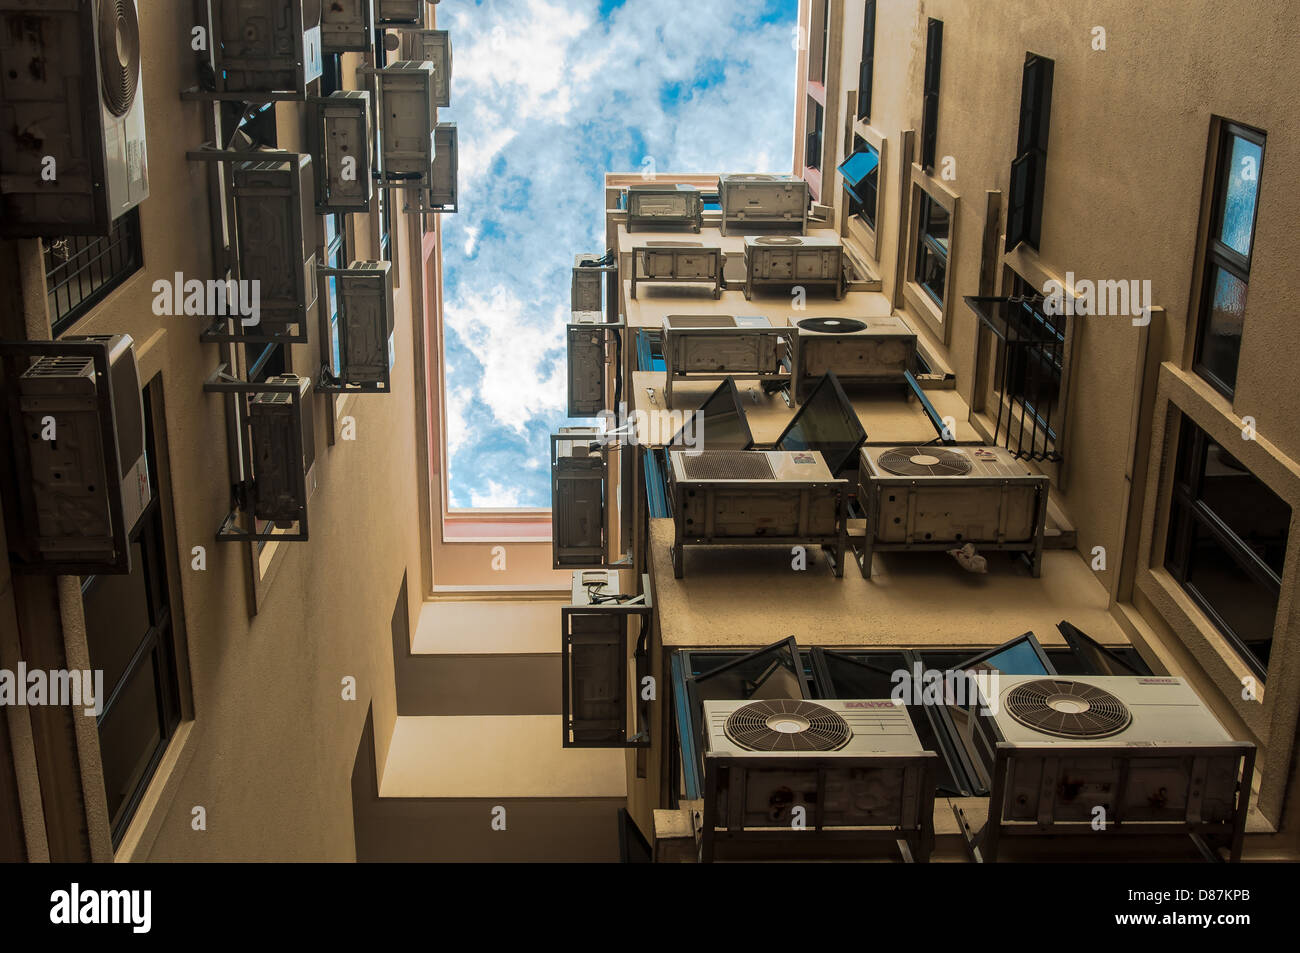 Urban Mess - A lot of Air conditioner (aircon) in a housing building - Stock Image